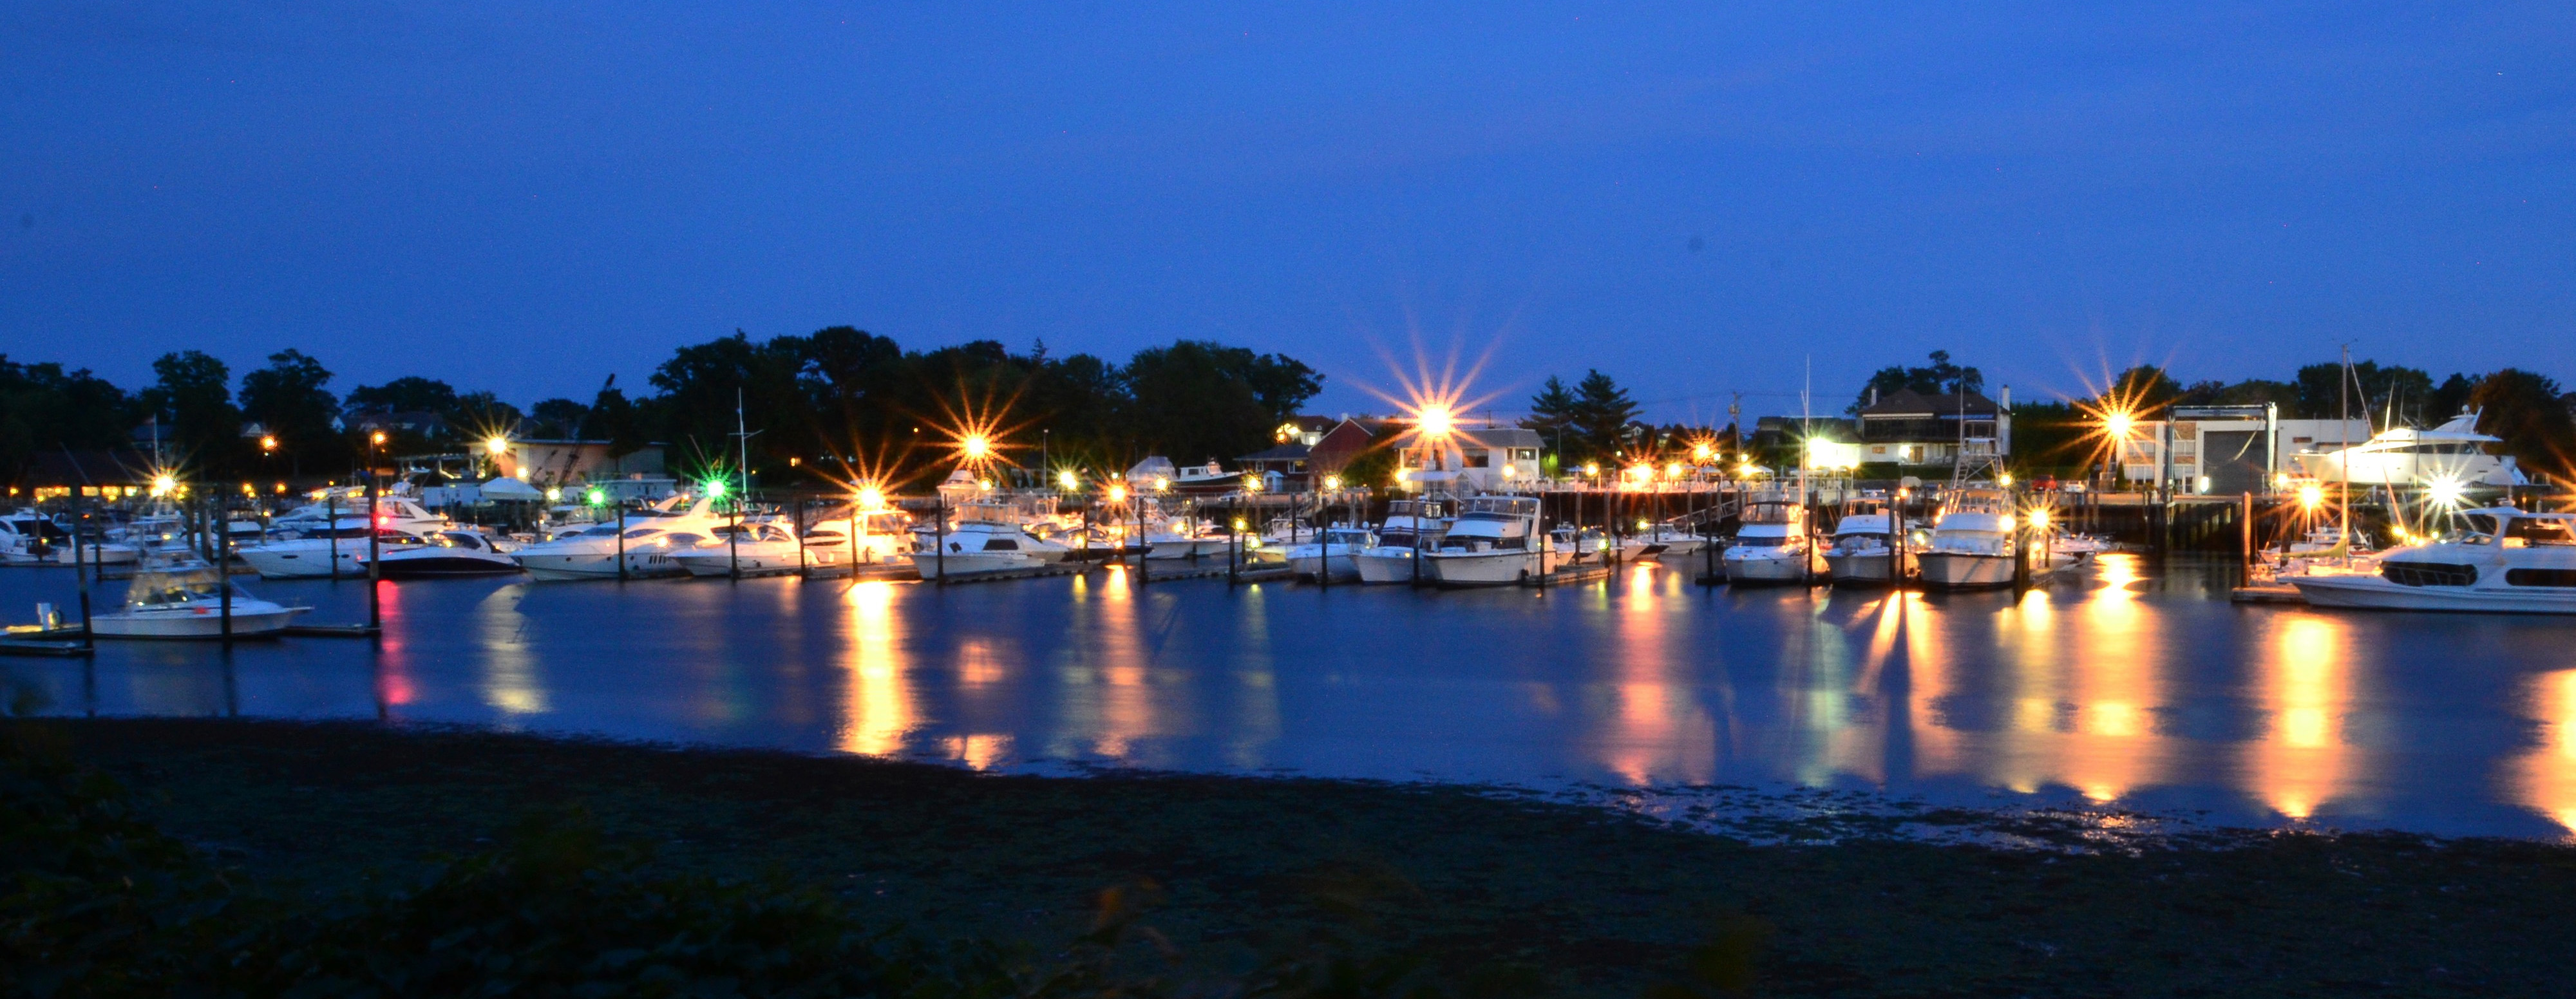 Imperial Yacht Club At Night